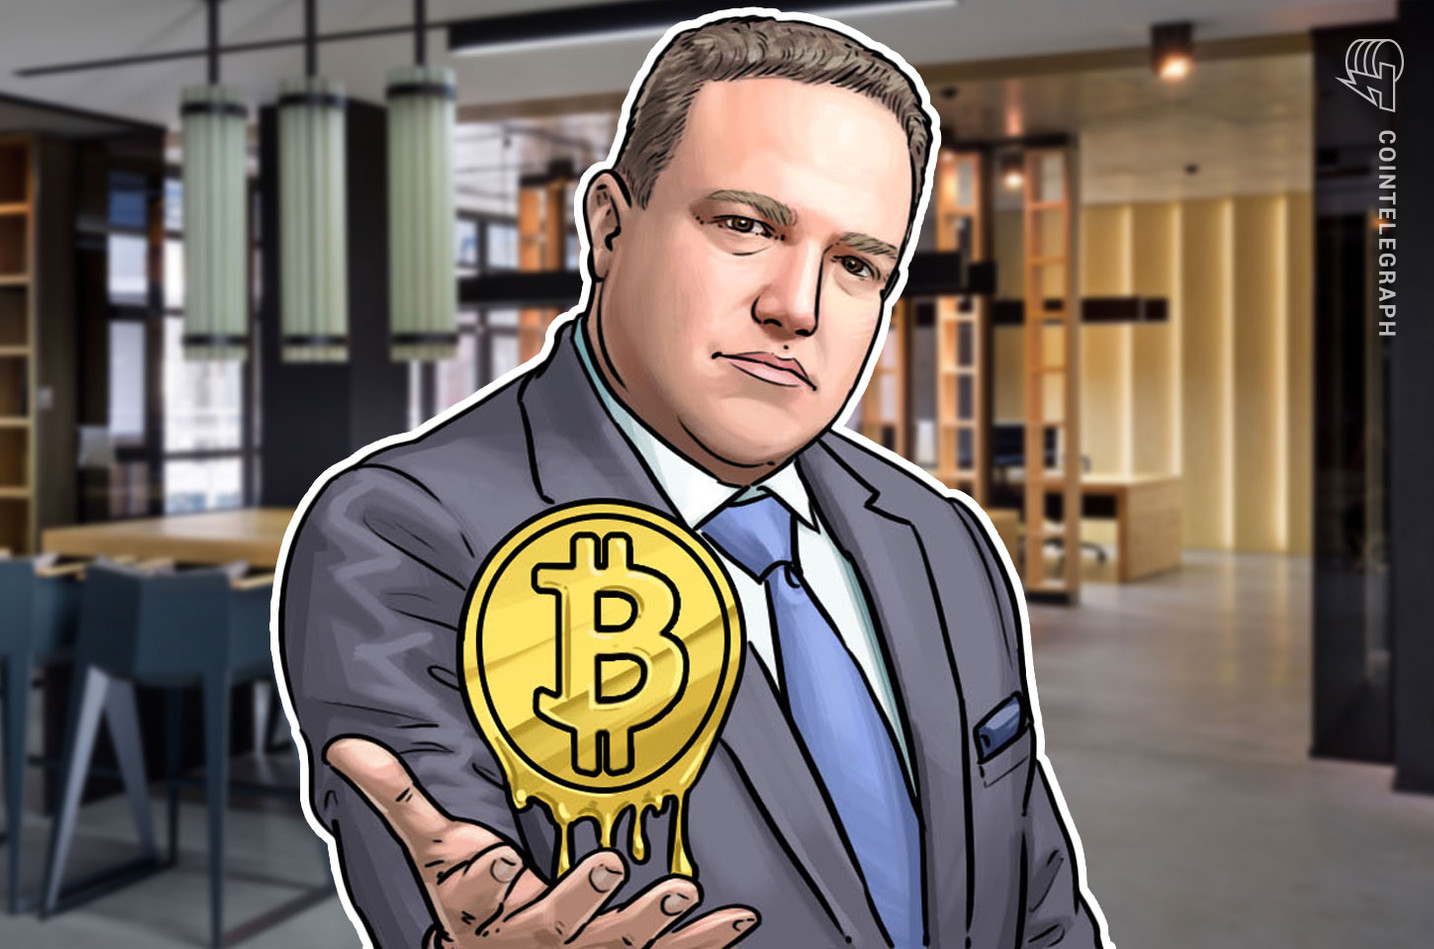 US Crypto Lawyer David Silver On Why He's To Thank For Industry's Increased Gov't Scrutiny